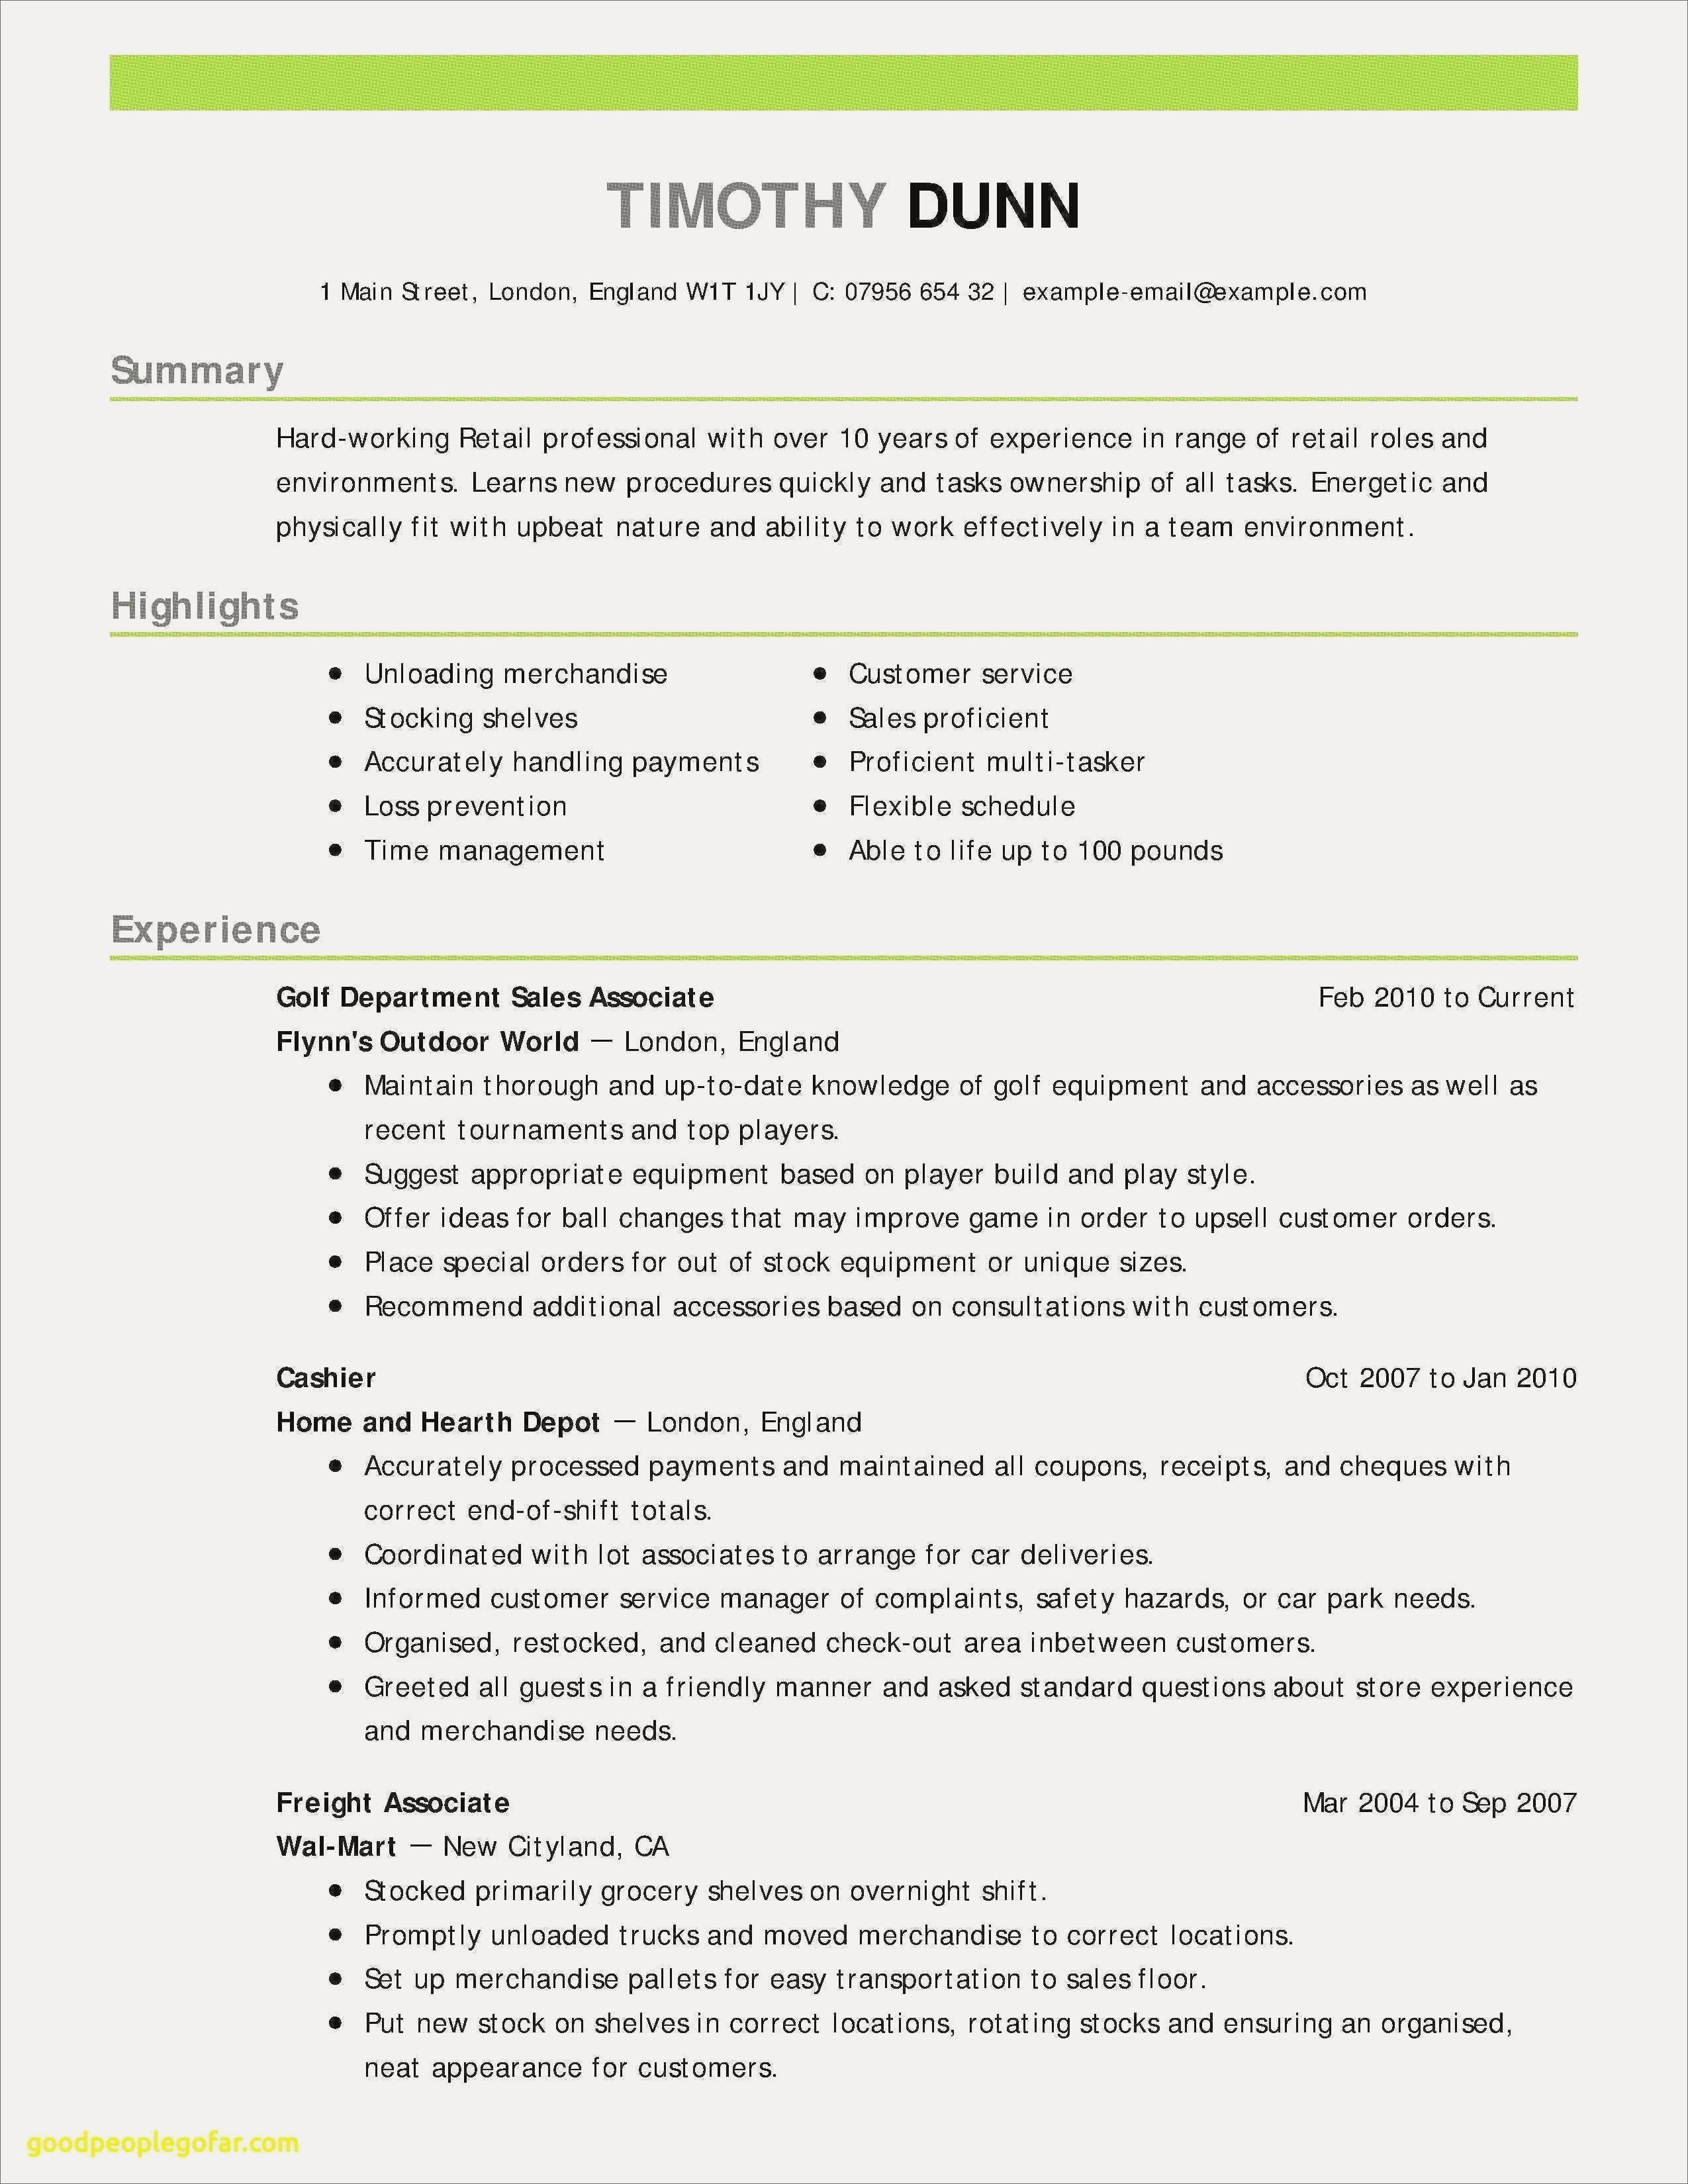 skills for customer service resume Collection-Resume Skills Examples For Customer Service Best Customer Service Resume Sample Beautiful Resume Examples 0d Skills 14-d